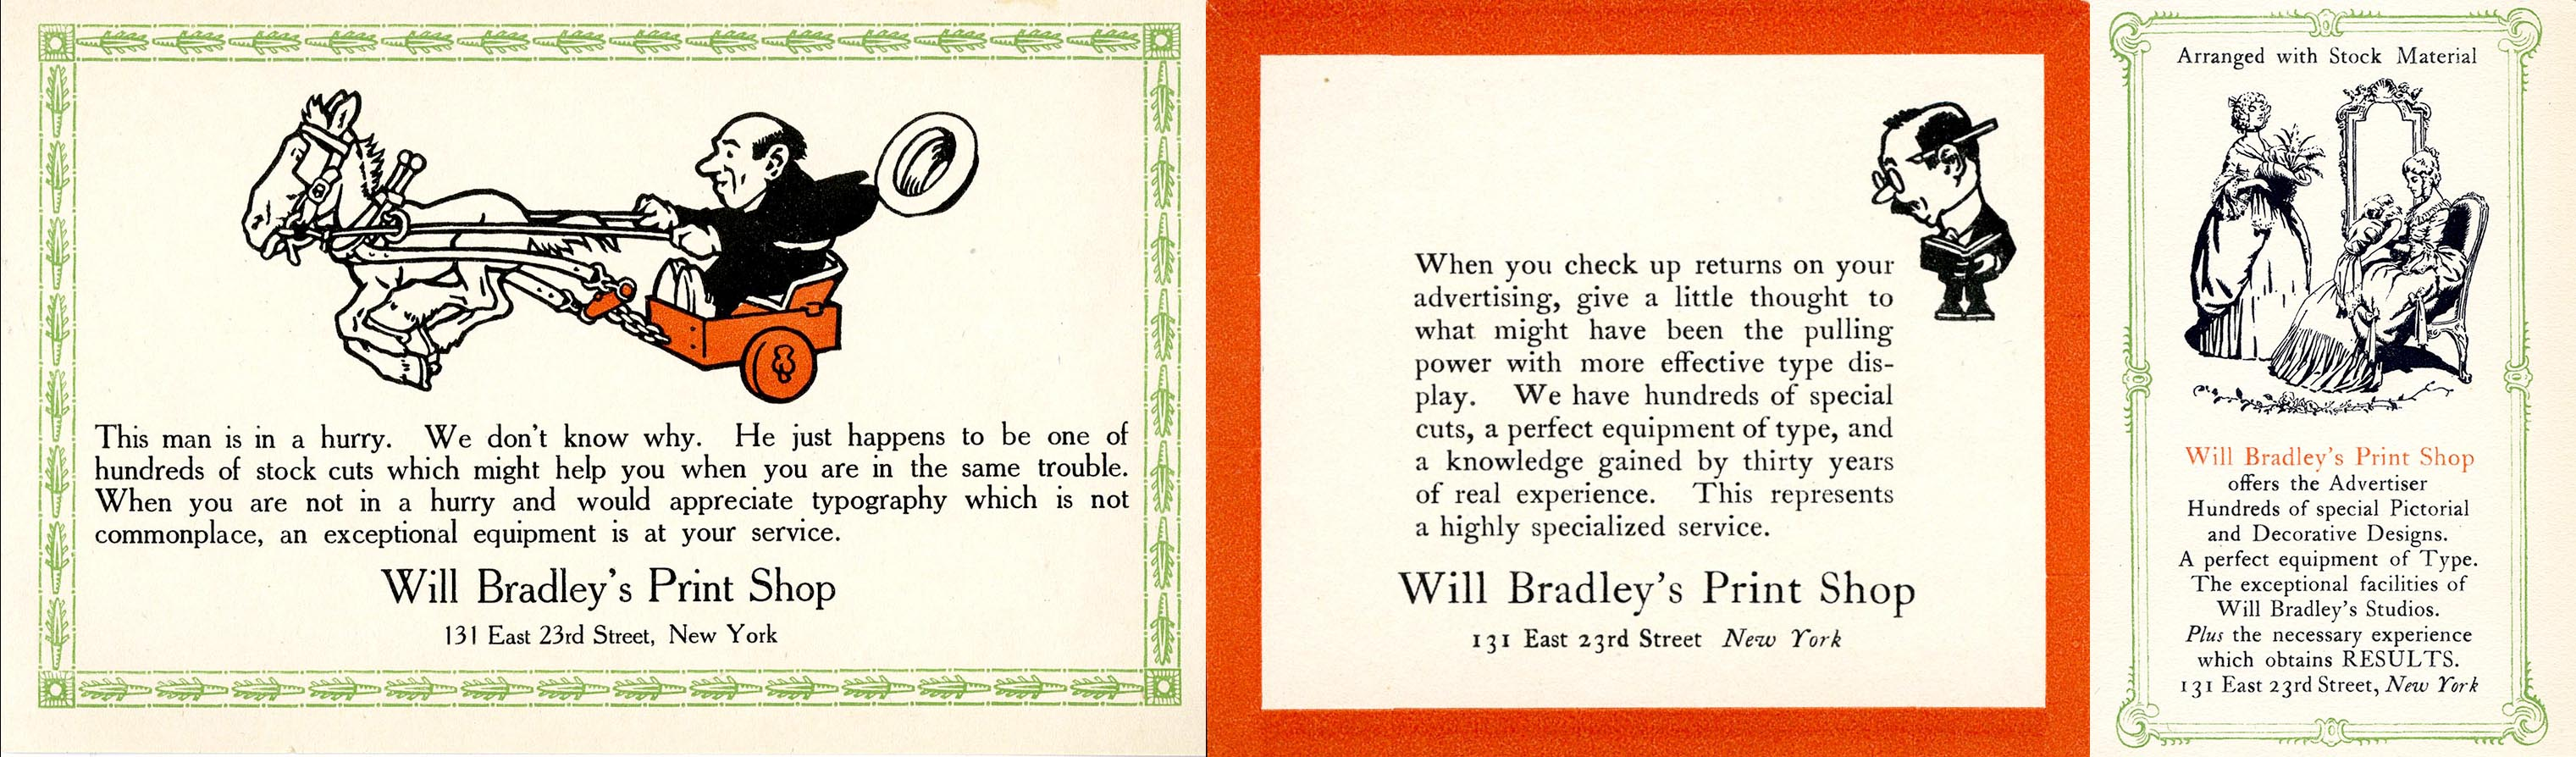 Three advertising cards for Will Bradley's Print Shop, 131 East 23rd Street, New York